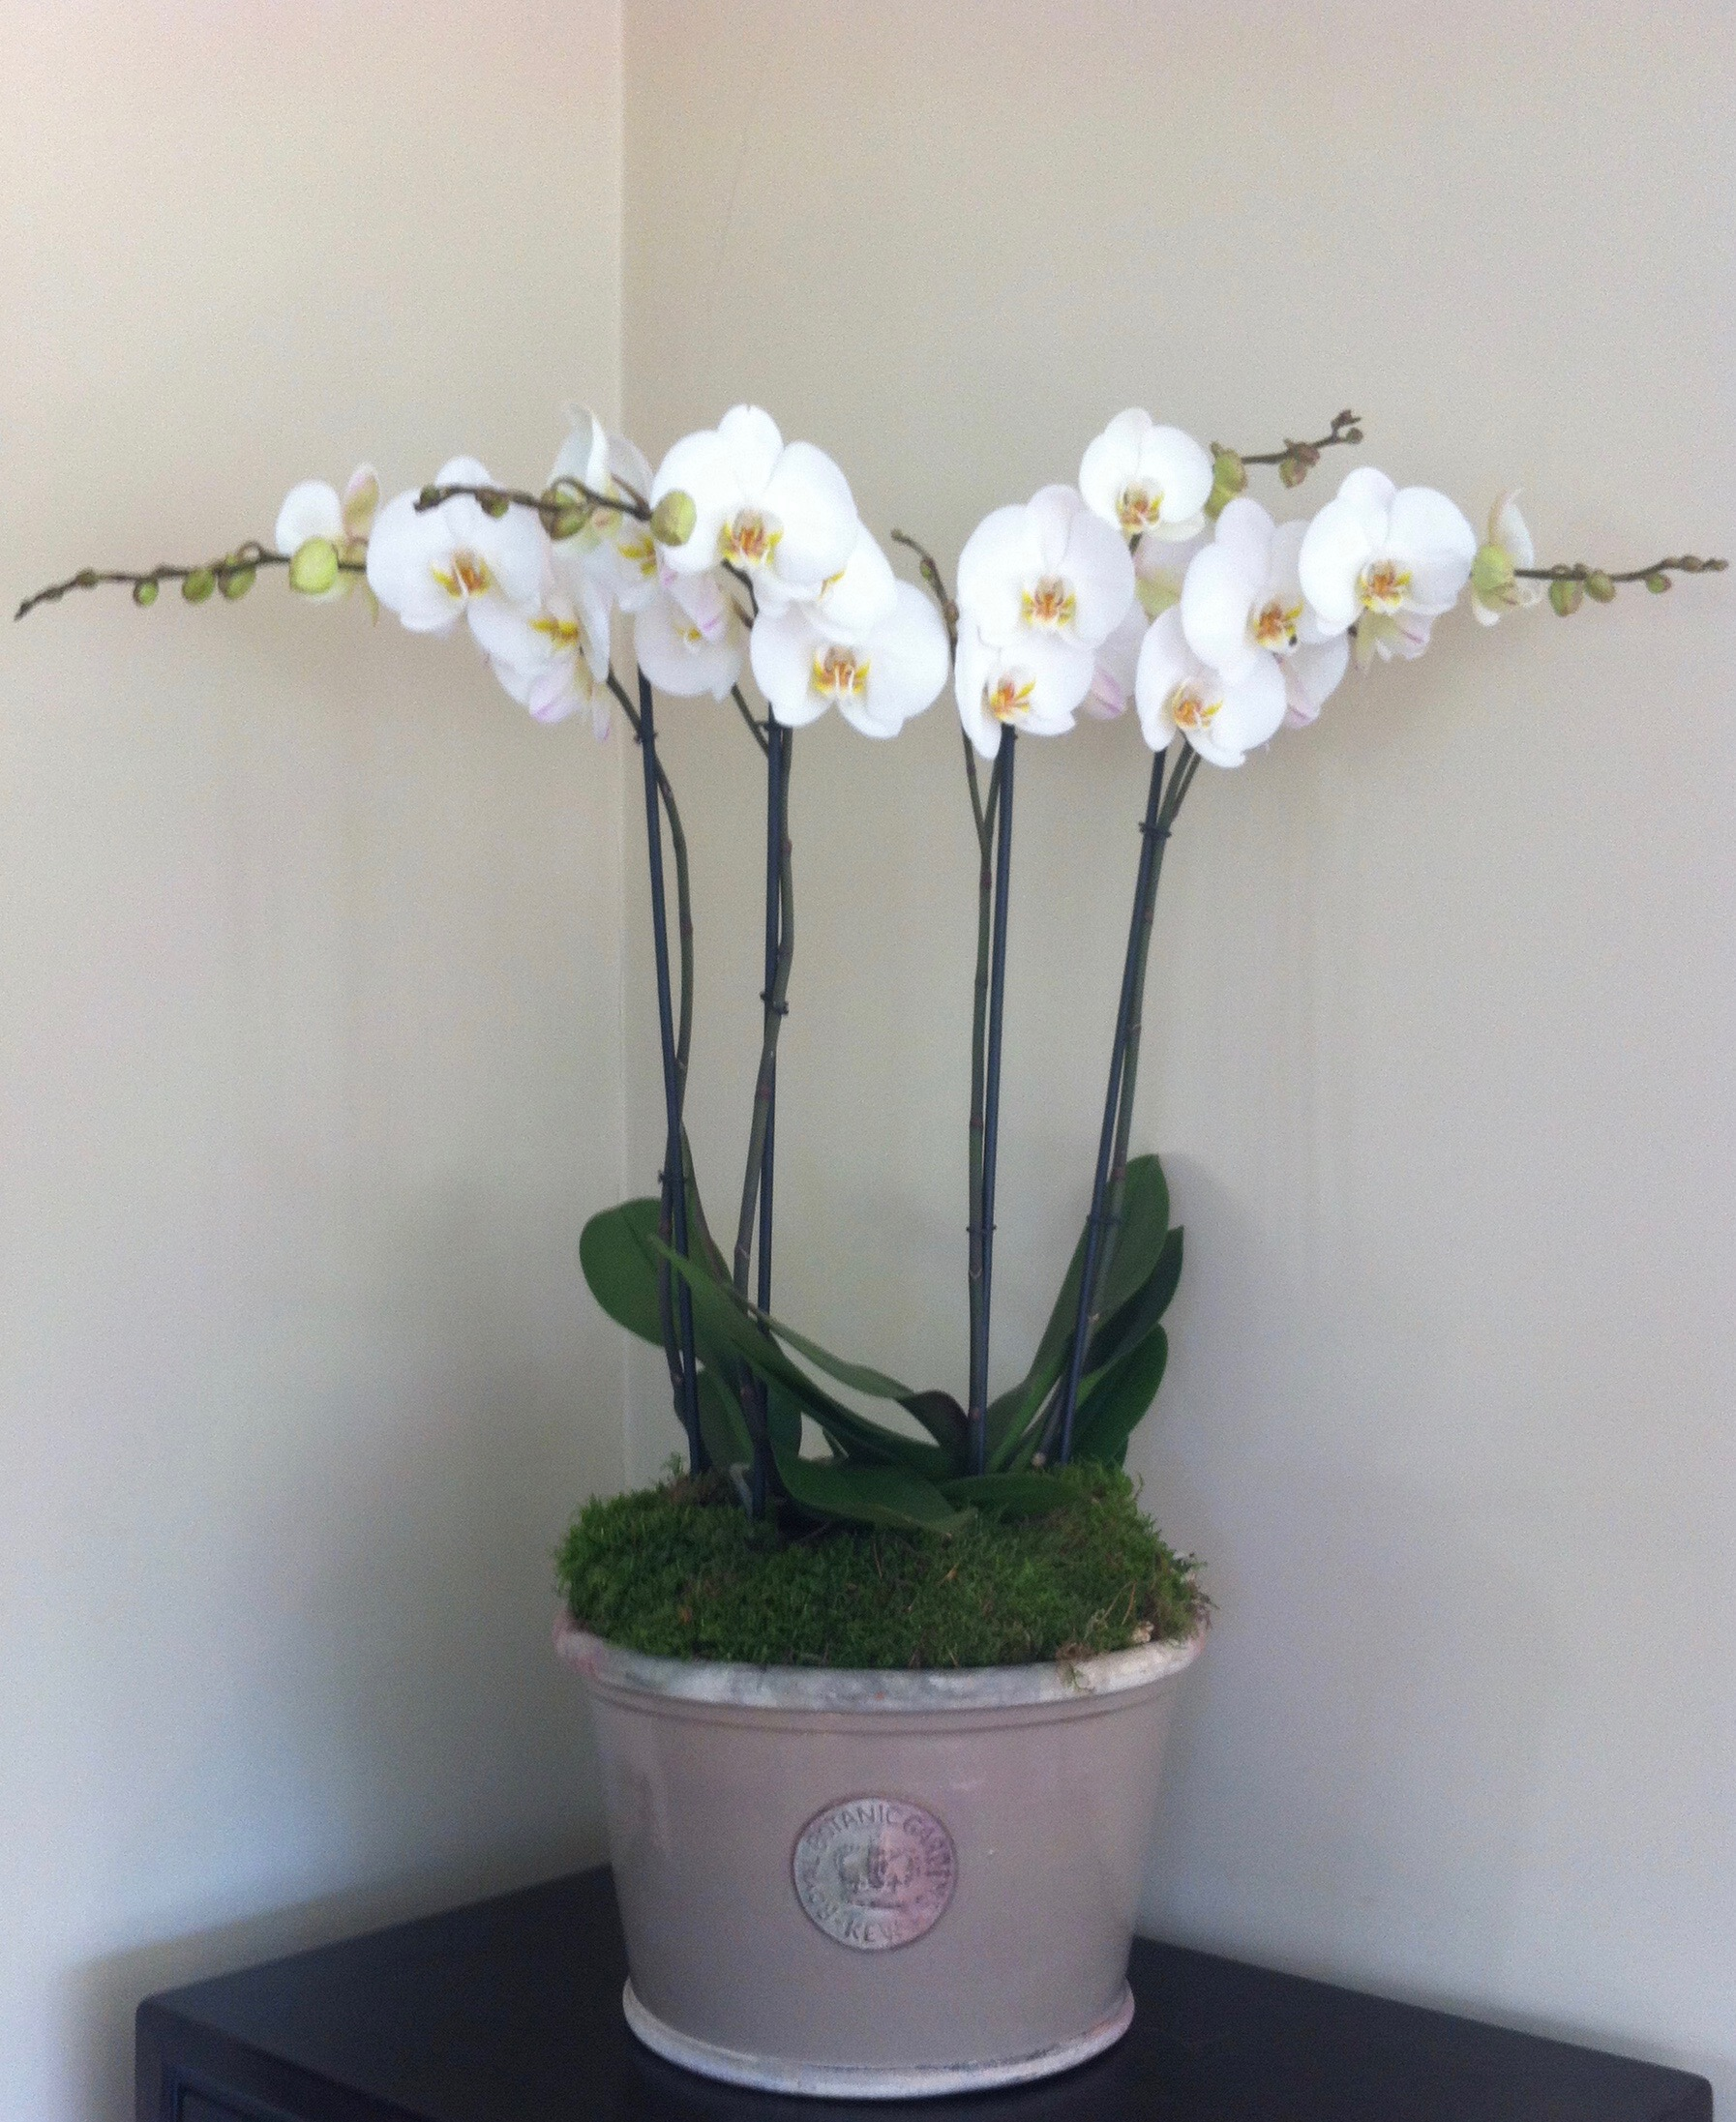 Medium straight-sided Kew bowl planted with two double stemmed white orchids - £95 -